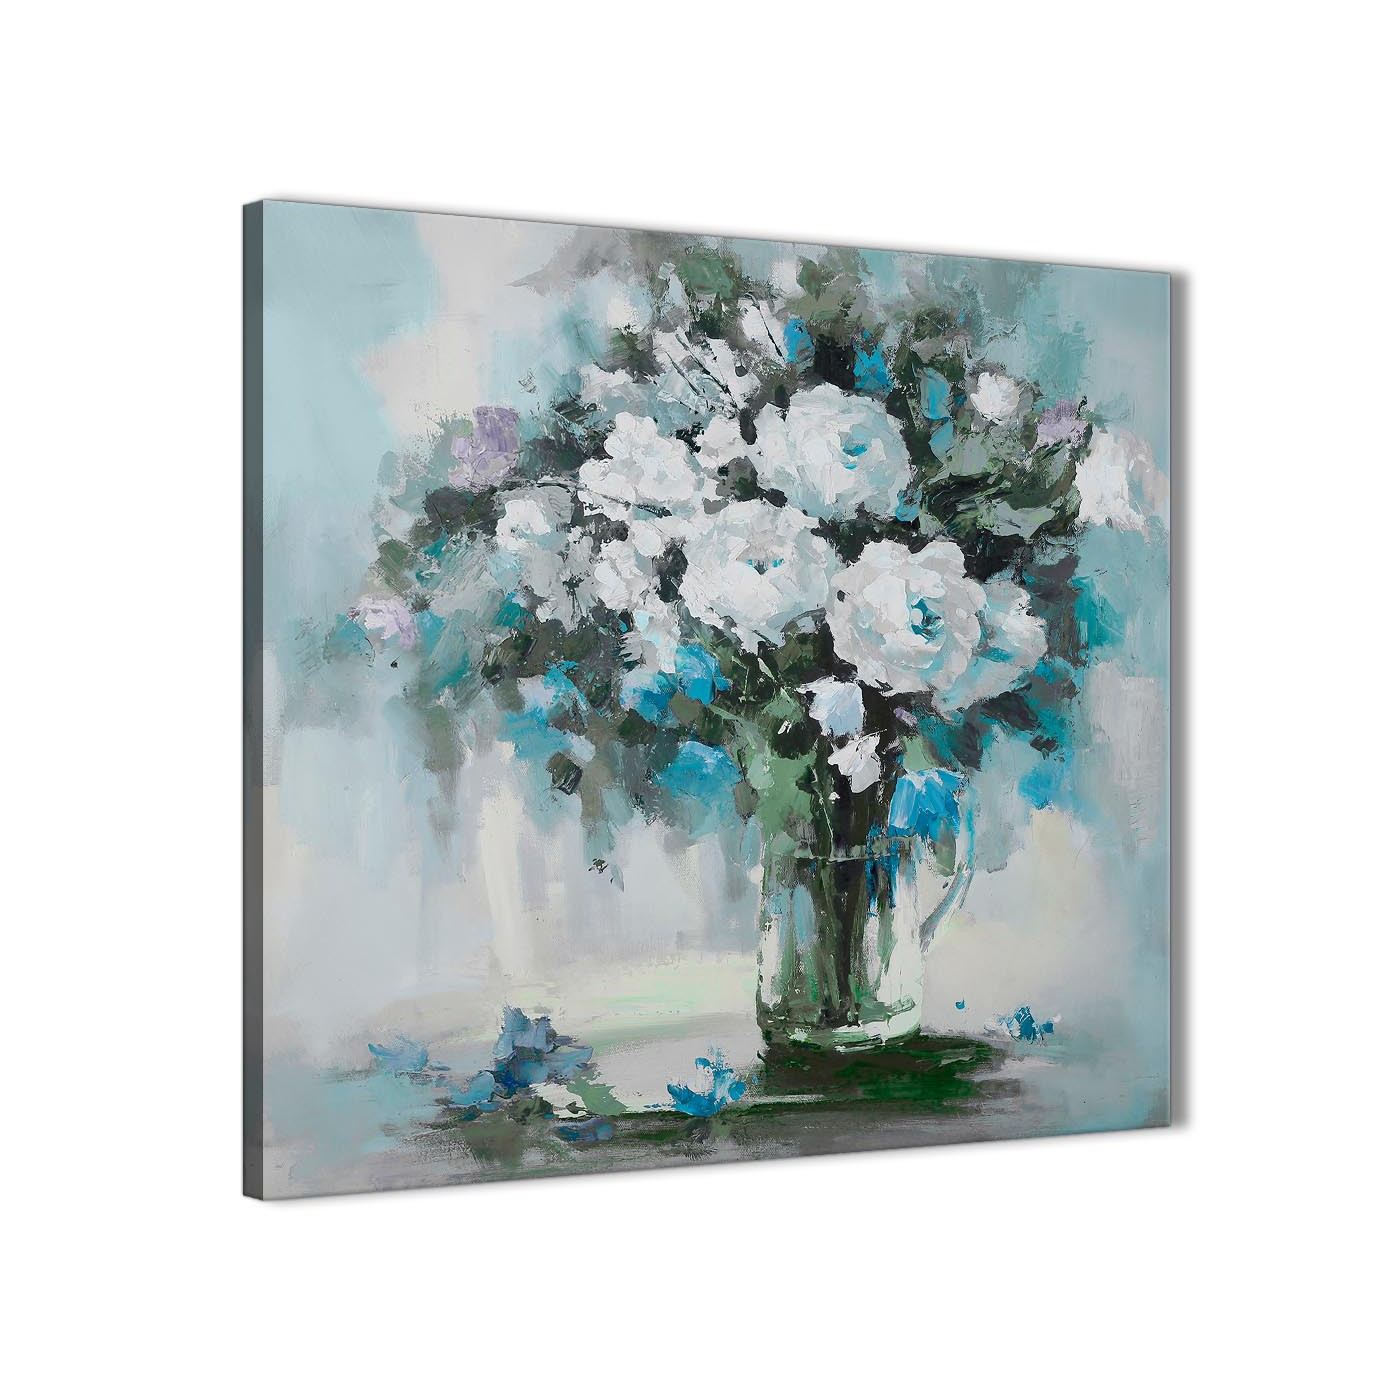 Teal white flowers painting kitchen canvas wall art accessories abstract 1s440s 49cm square print cheap teal white flowers painting kitchen canvas wall art accessories abstract 1s440s 49cm square display gallery item 1 mightylinksfo